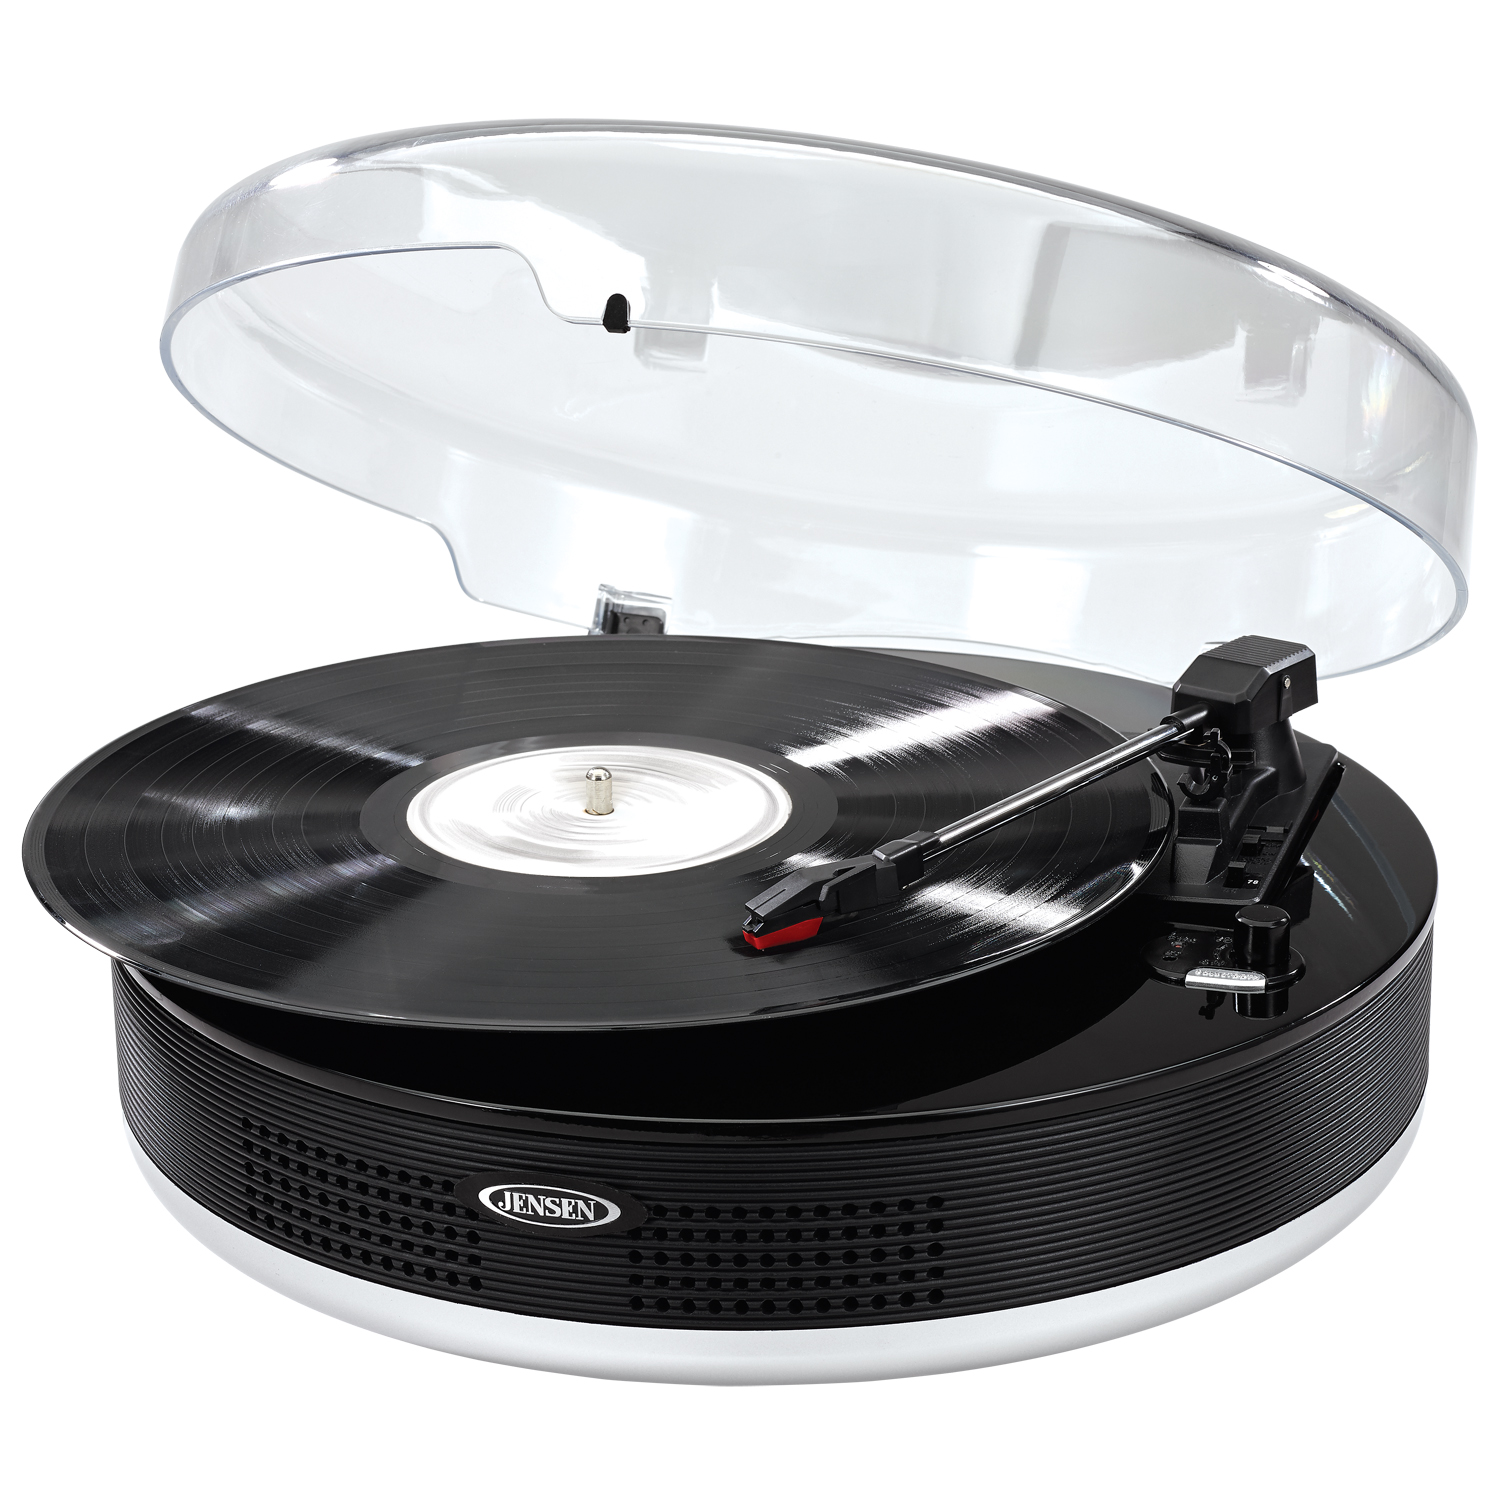 Jensen 3-Speed Stereo Turntable with Bluetooth by Jensen